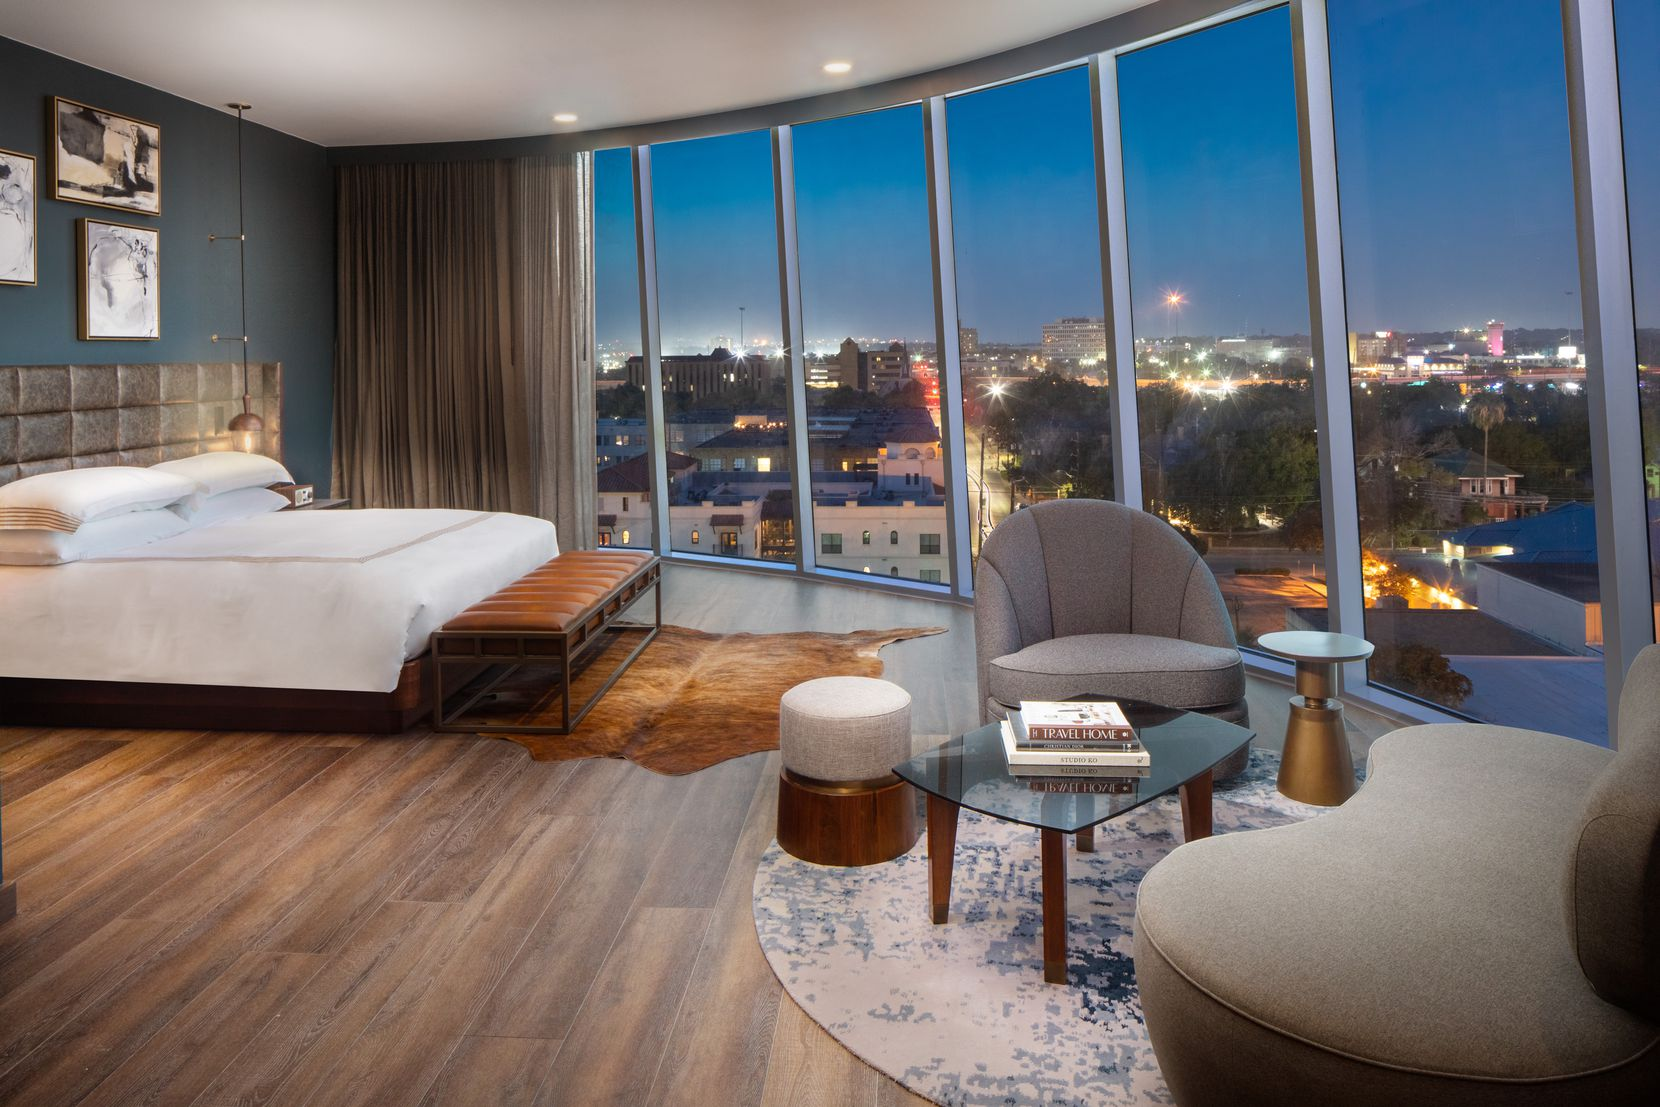 This Studio Suite, one of 33 suites at the Thompson San Antonio, offers picturesque views of the city.